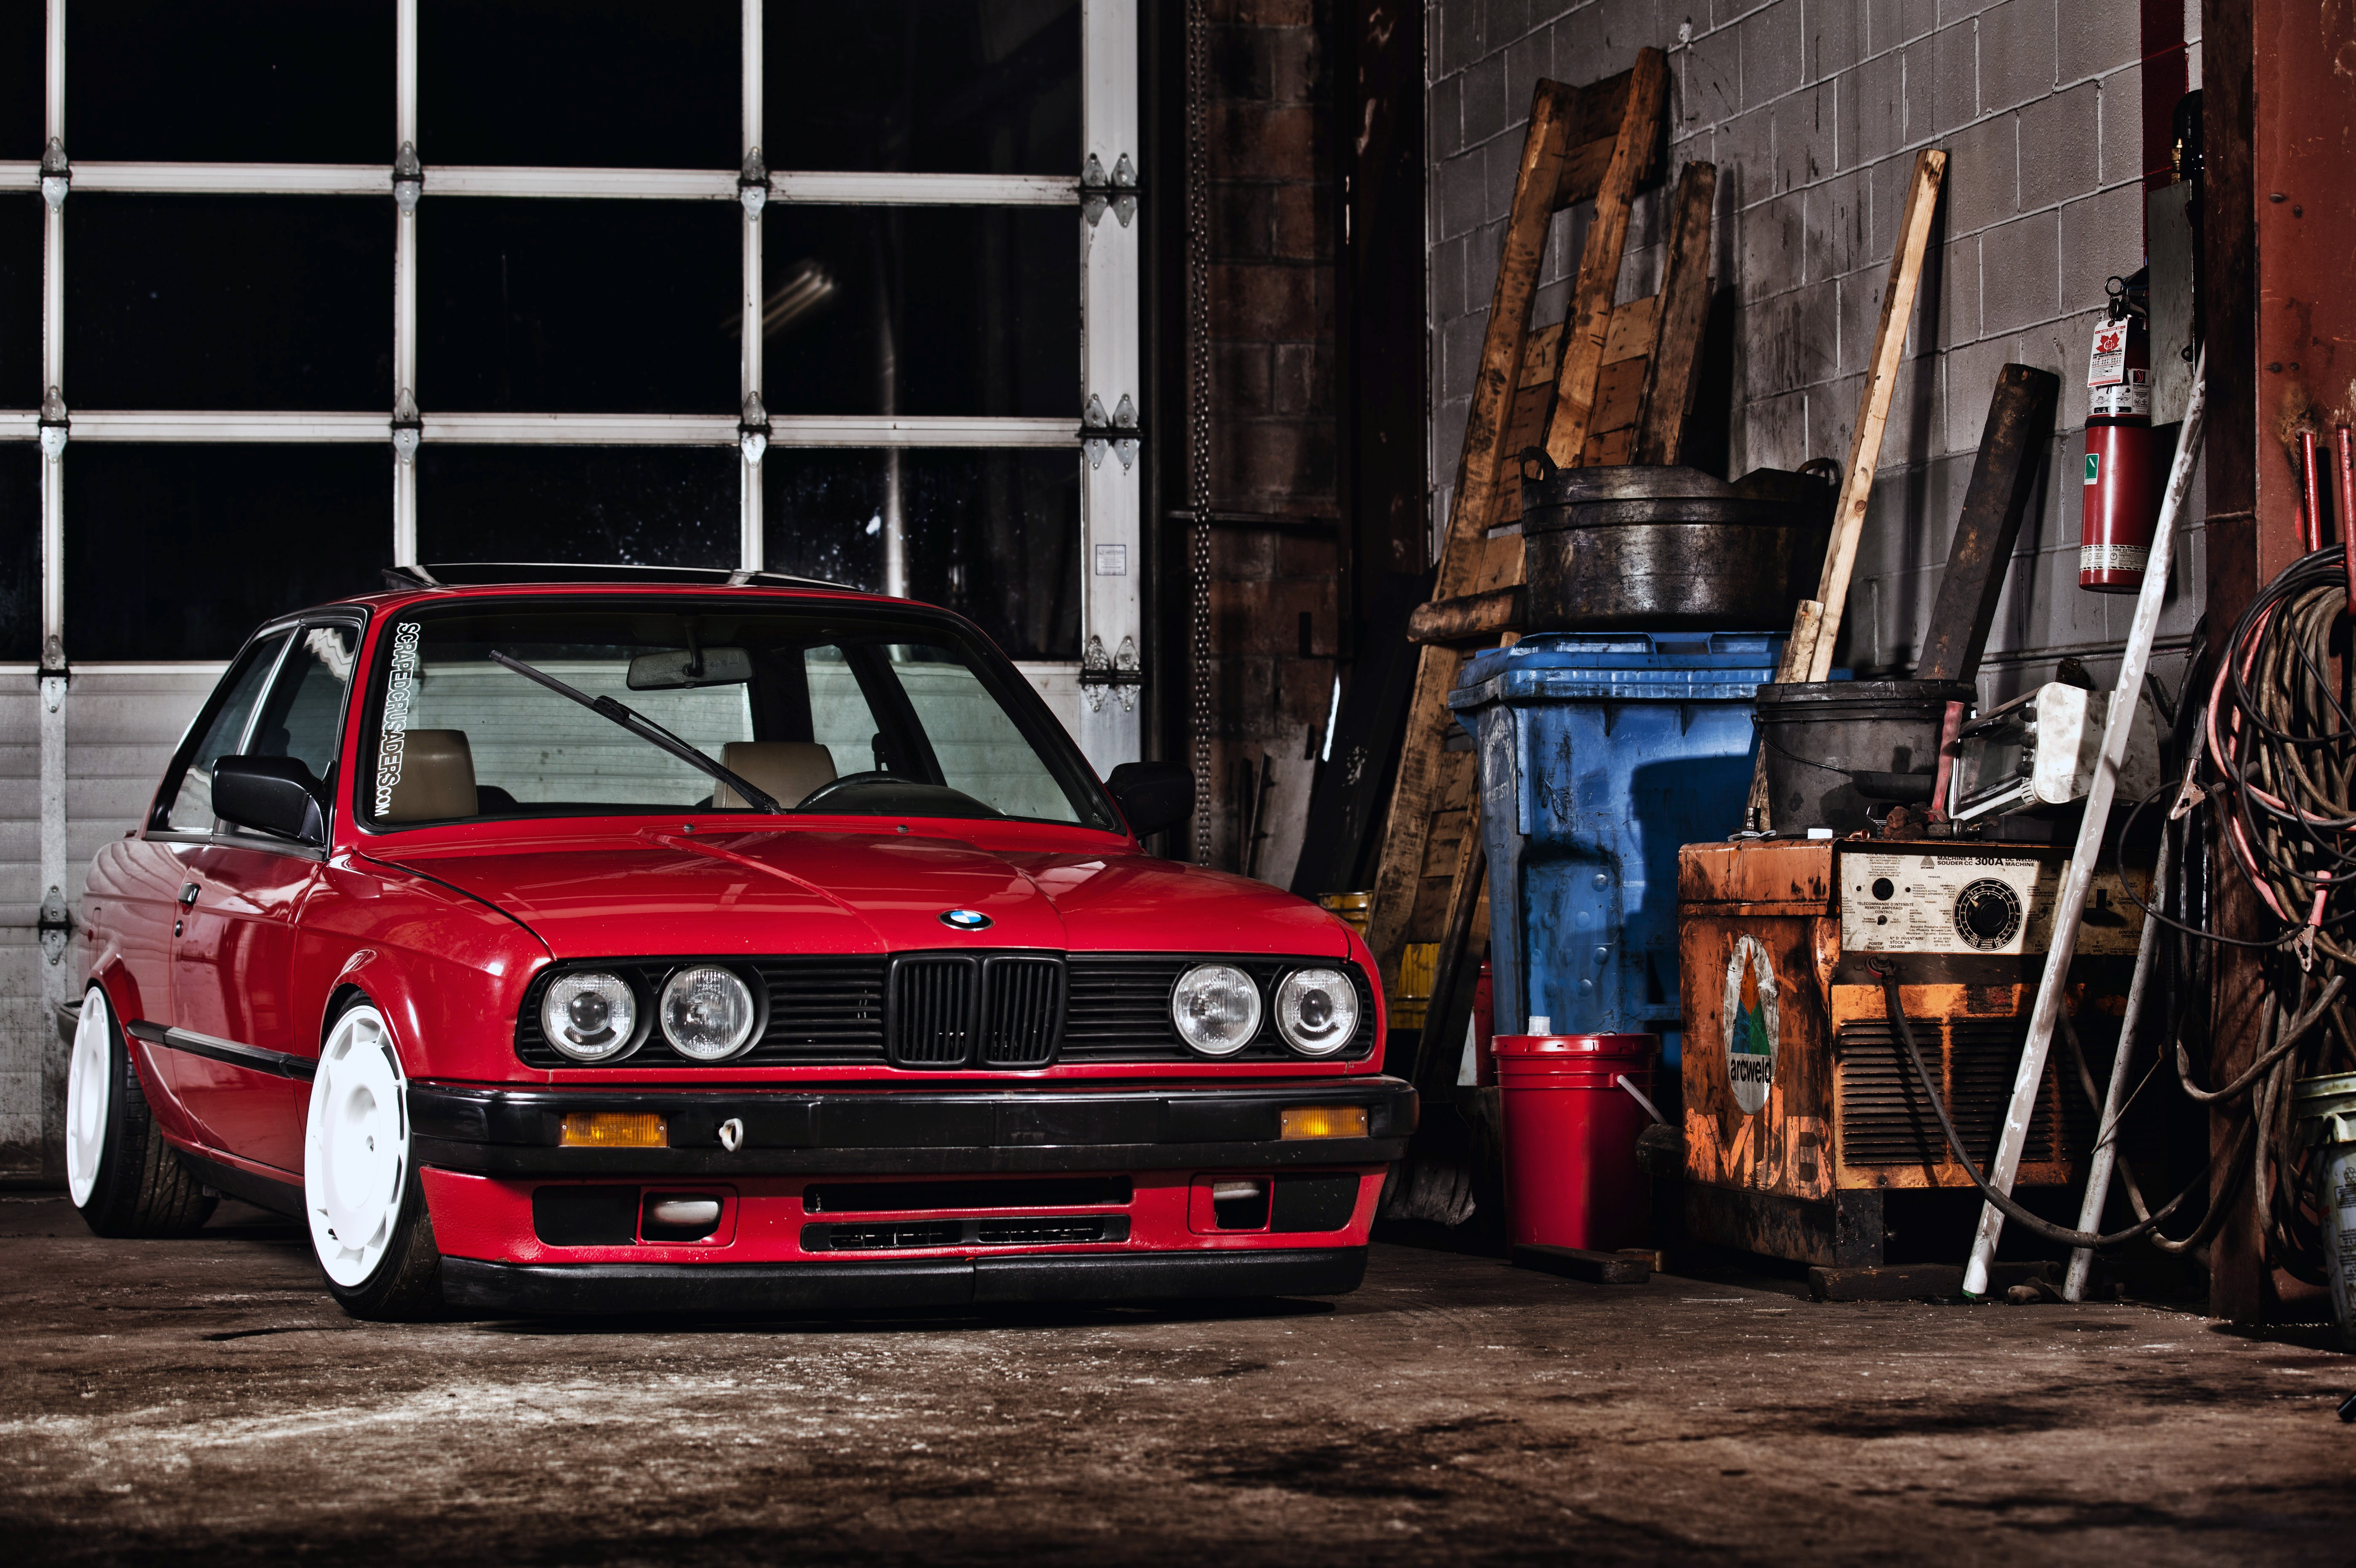 Car 5760x1080 Wallpaper Car Bmw Stance Red Cars Wallpapers Hd Desktop And